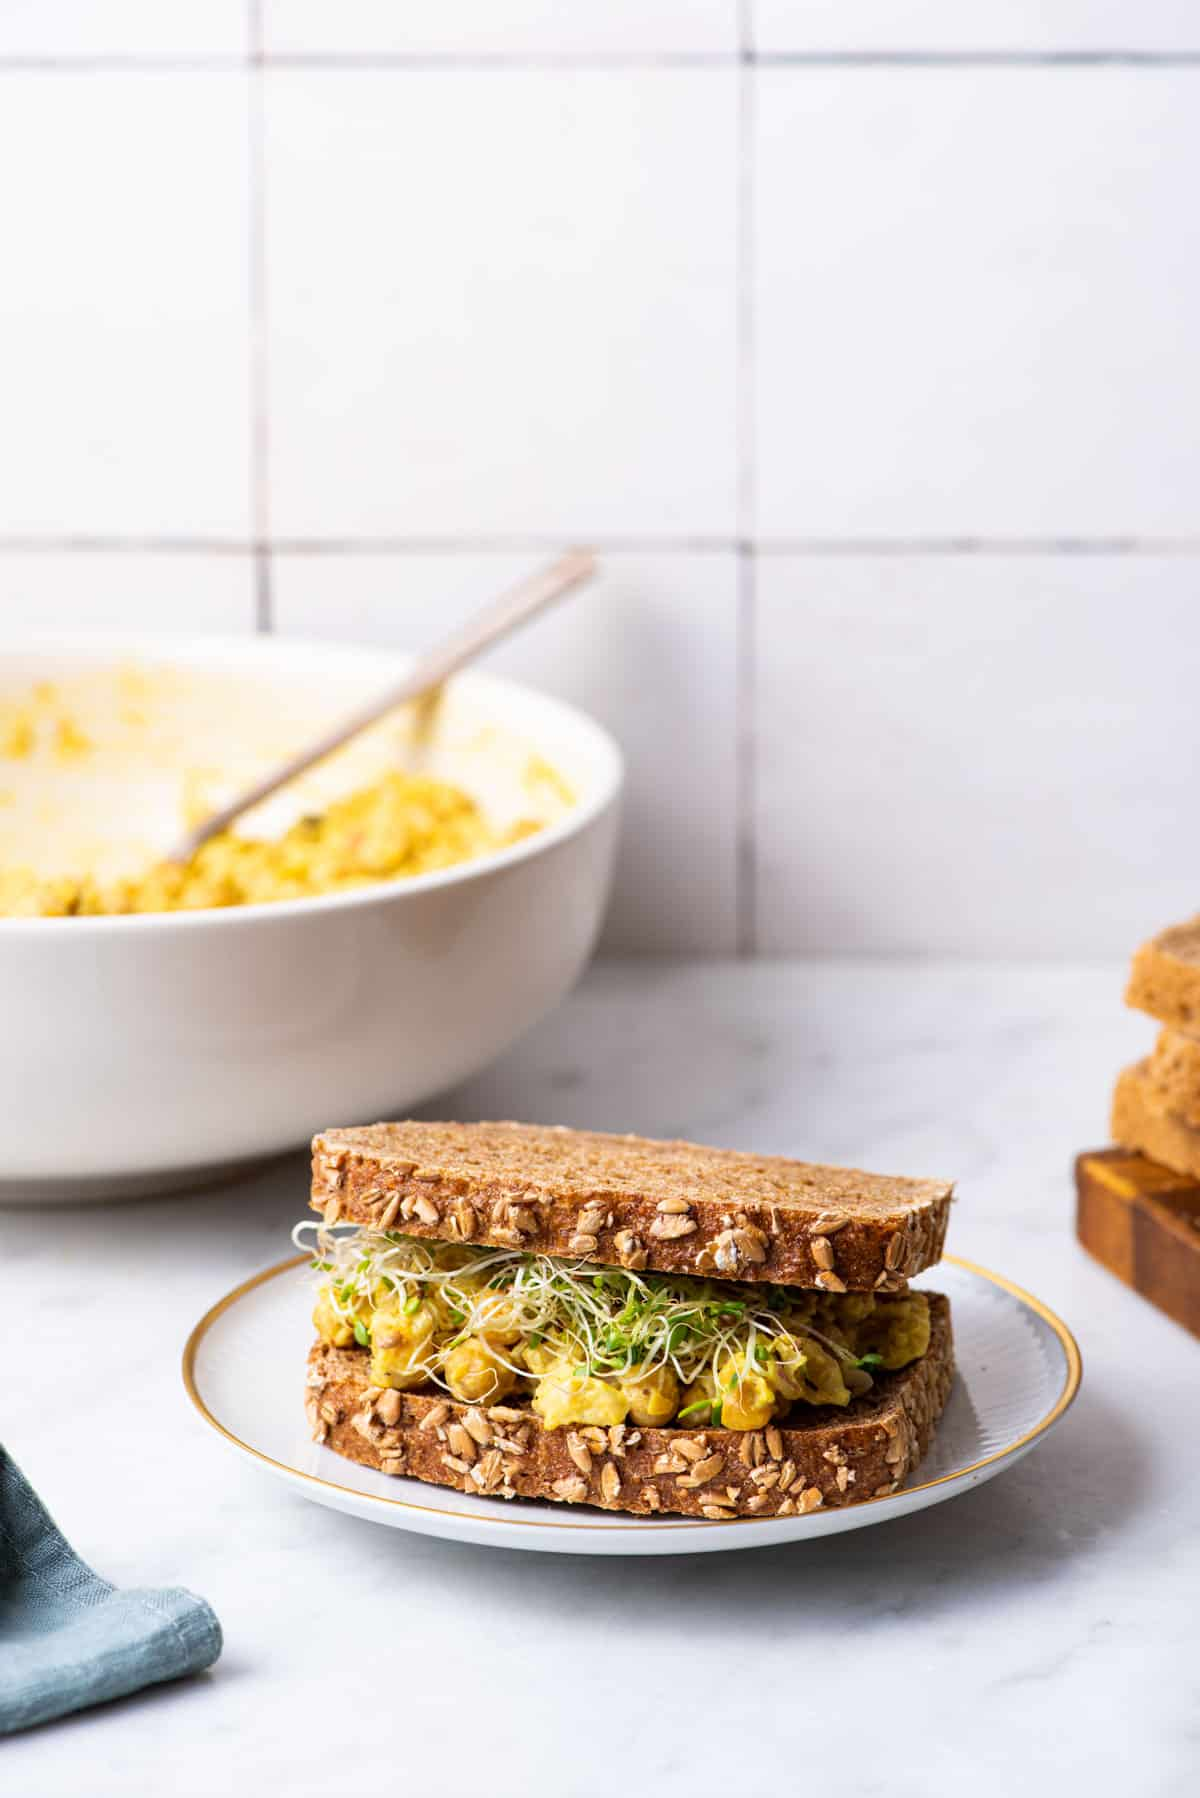 Curried chickpea salad sandwich on whole wheat bread with sprouts on a marble counter.